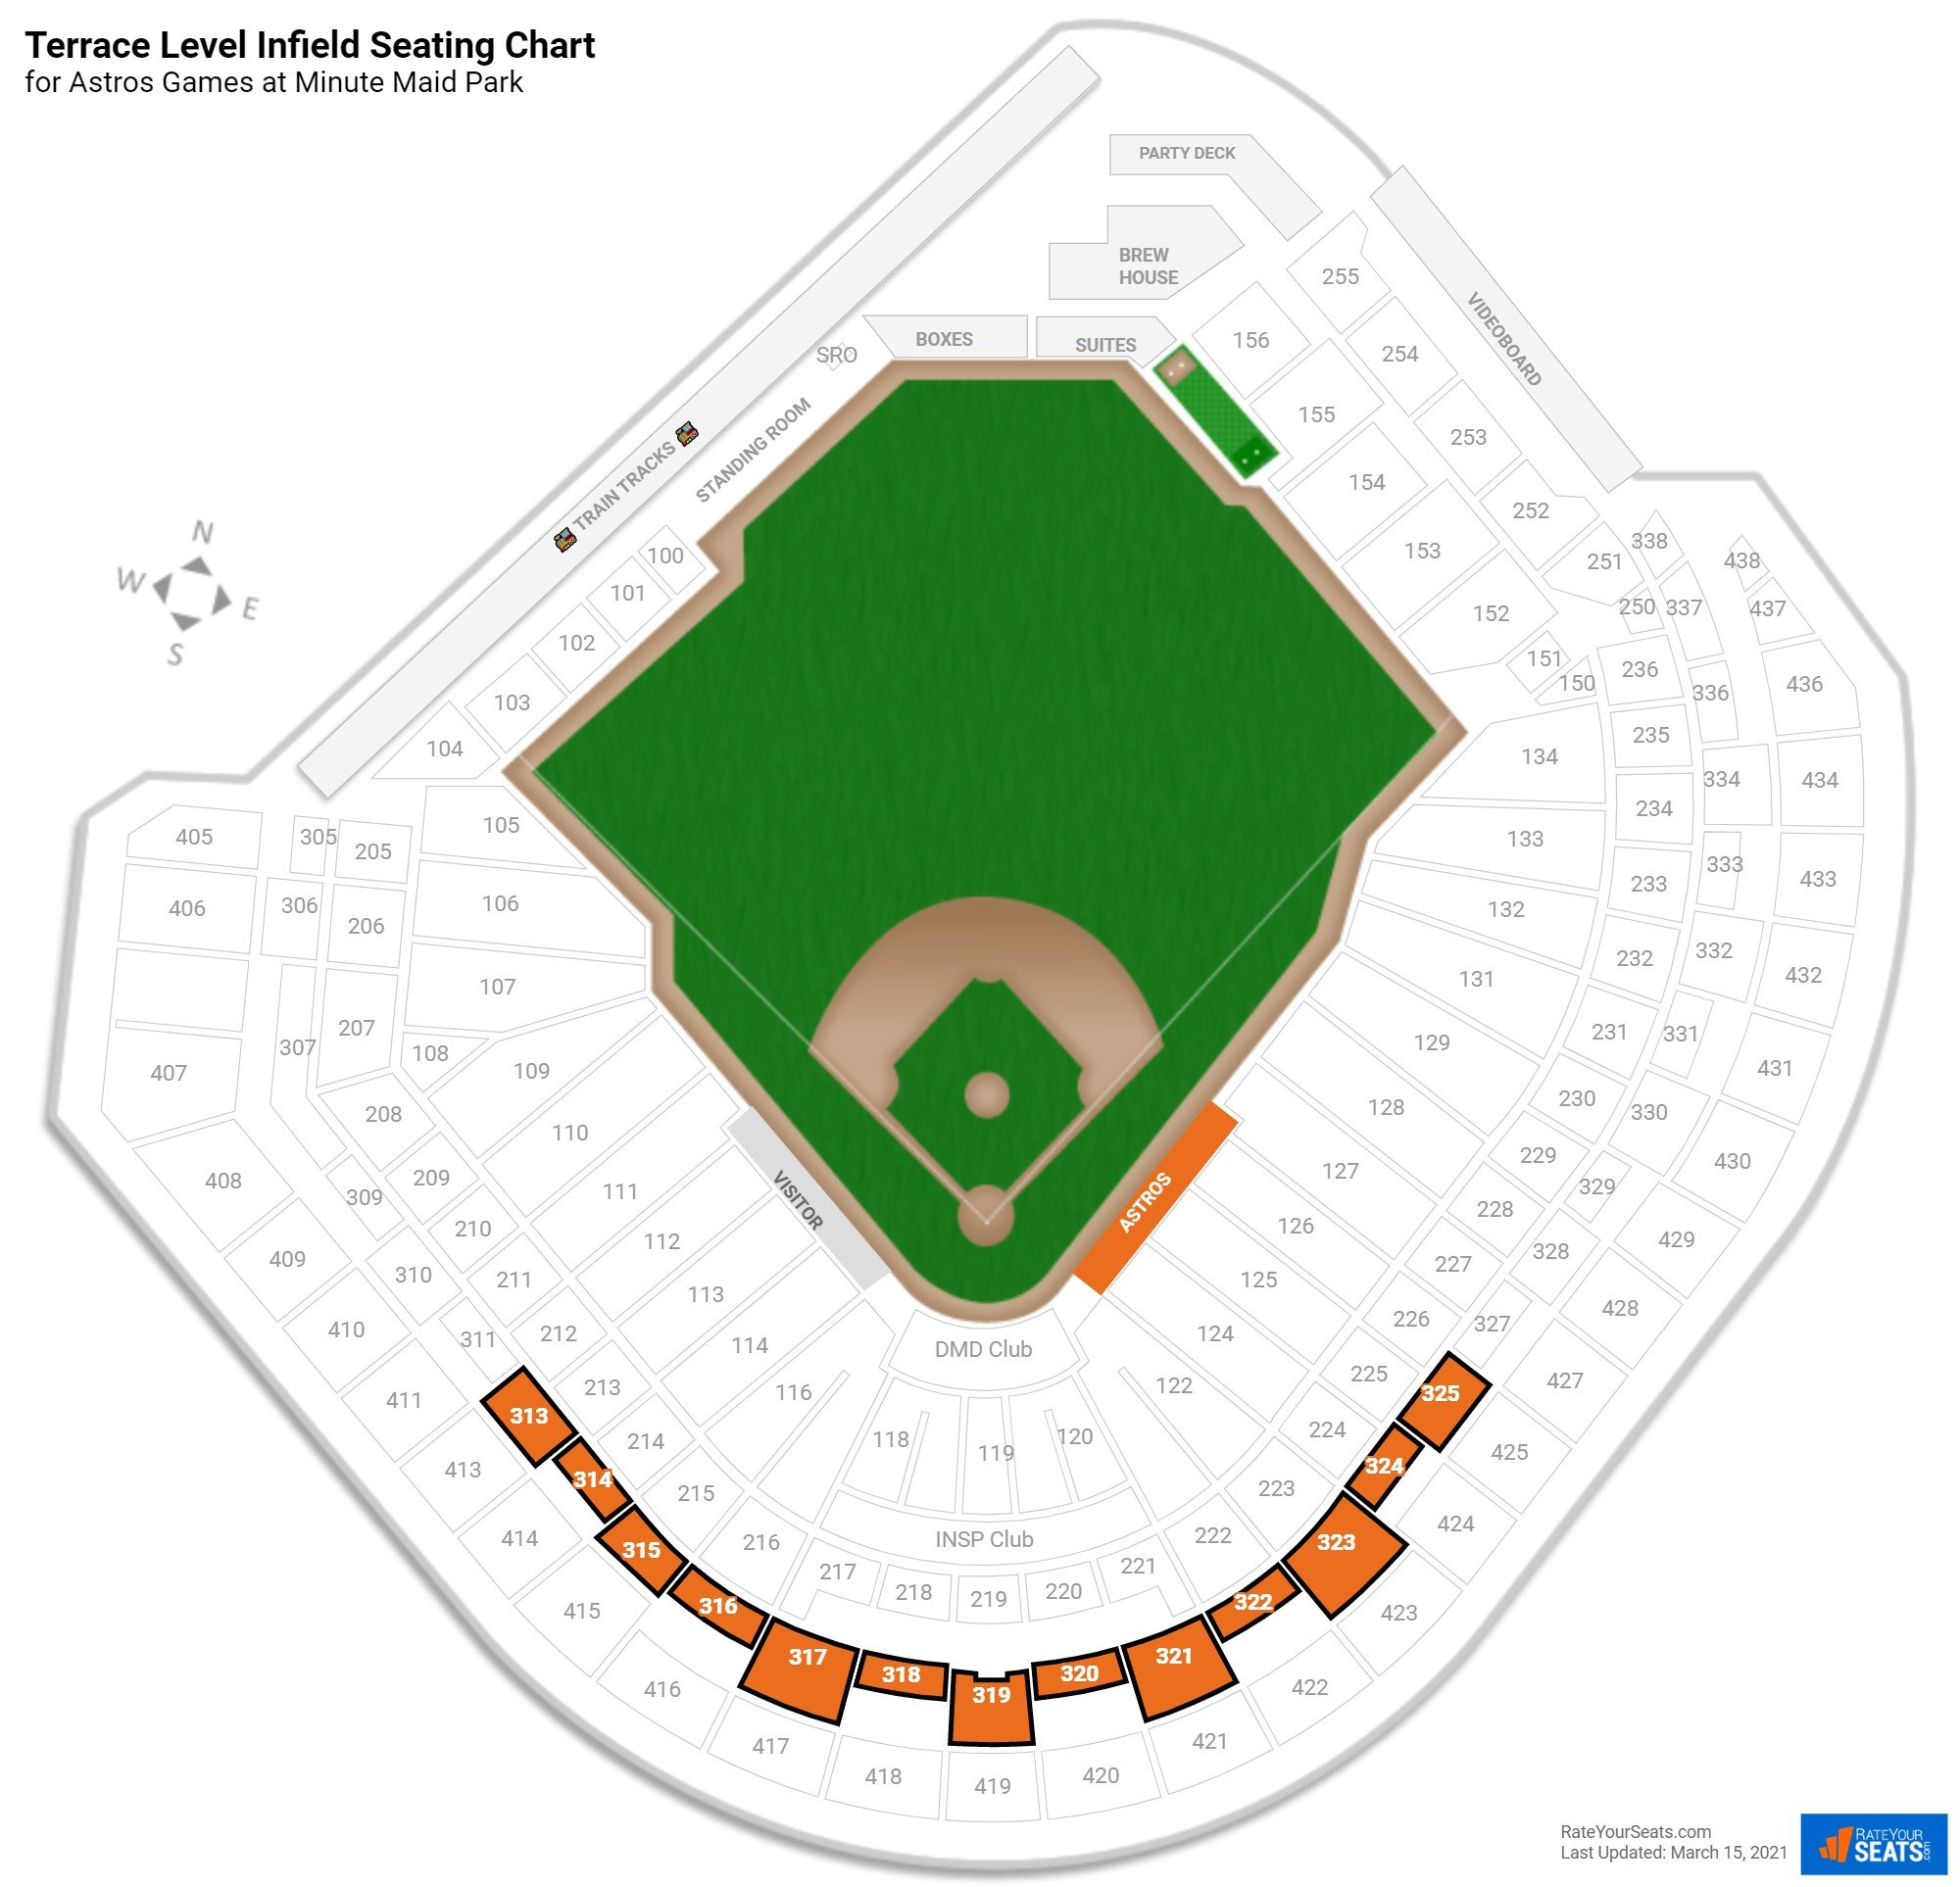 Minute Maid Park Terrace Level Infield seating chart